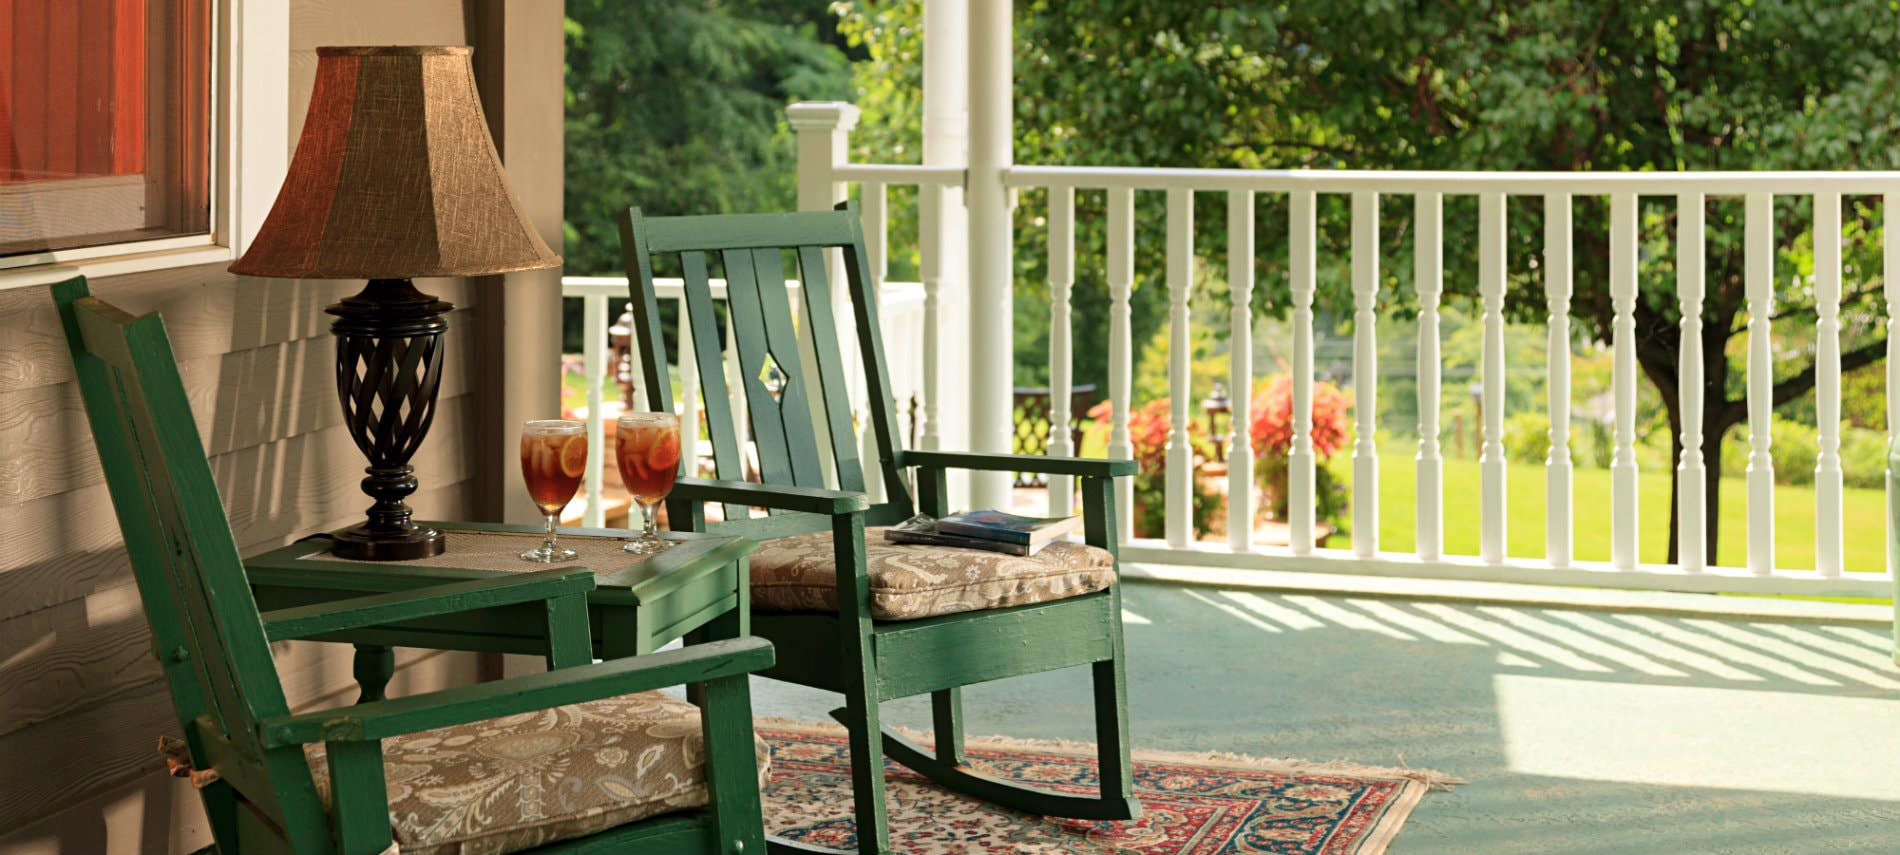 Covered porch with green rocking chairs, light green painting floor, white spindle railing, surrounded by green landscaping